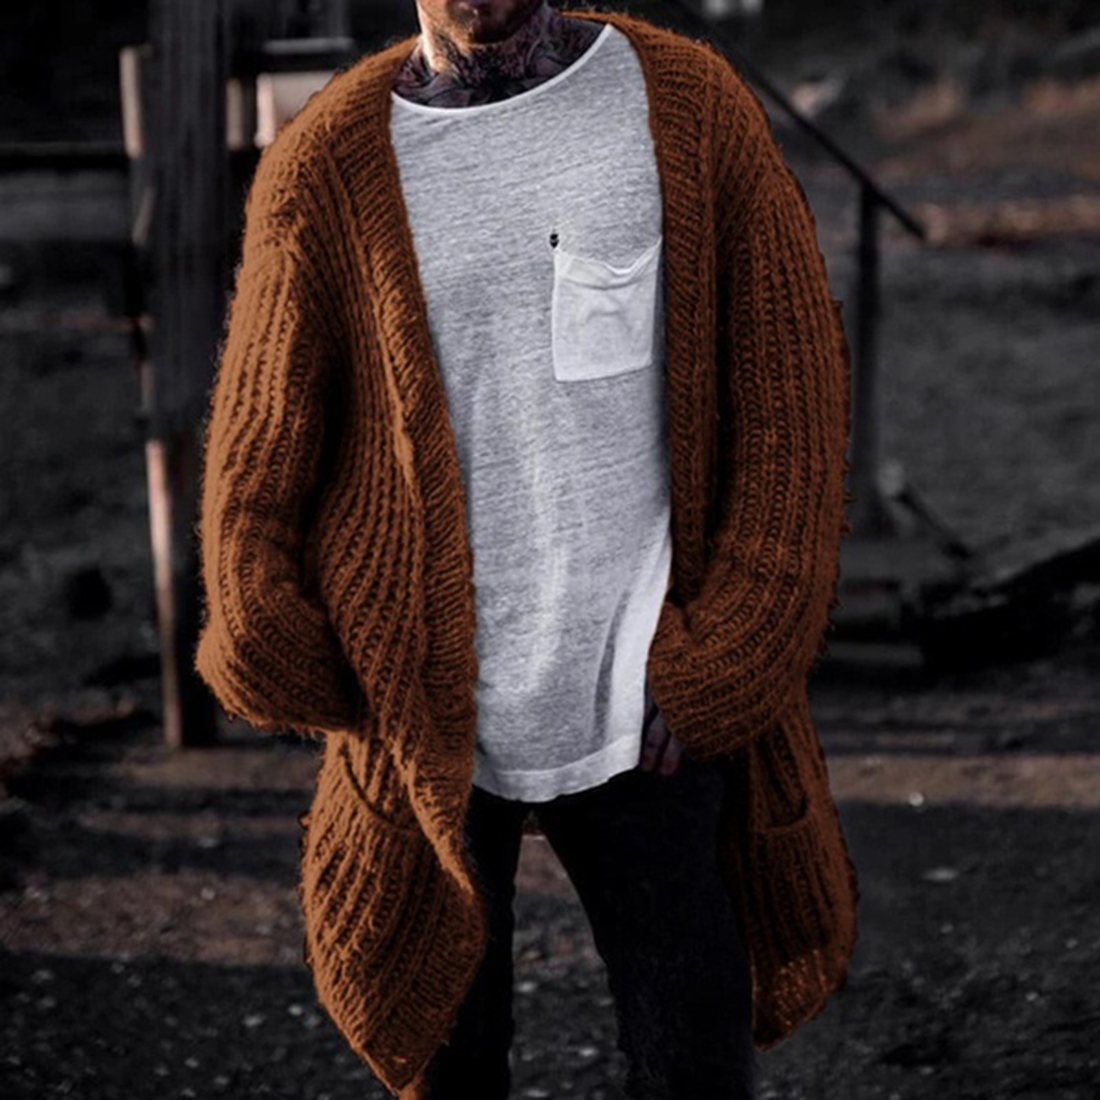 Pockets Men Autumn Winter Knitted Sweater Coat Long Sweater Cardigan Open Stitch Sweater Jacket Oversized Tricot Ribbed Cardigan